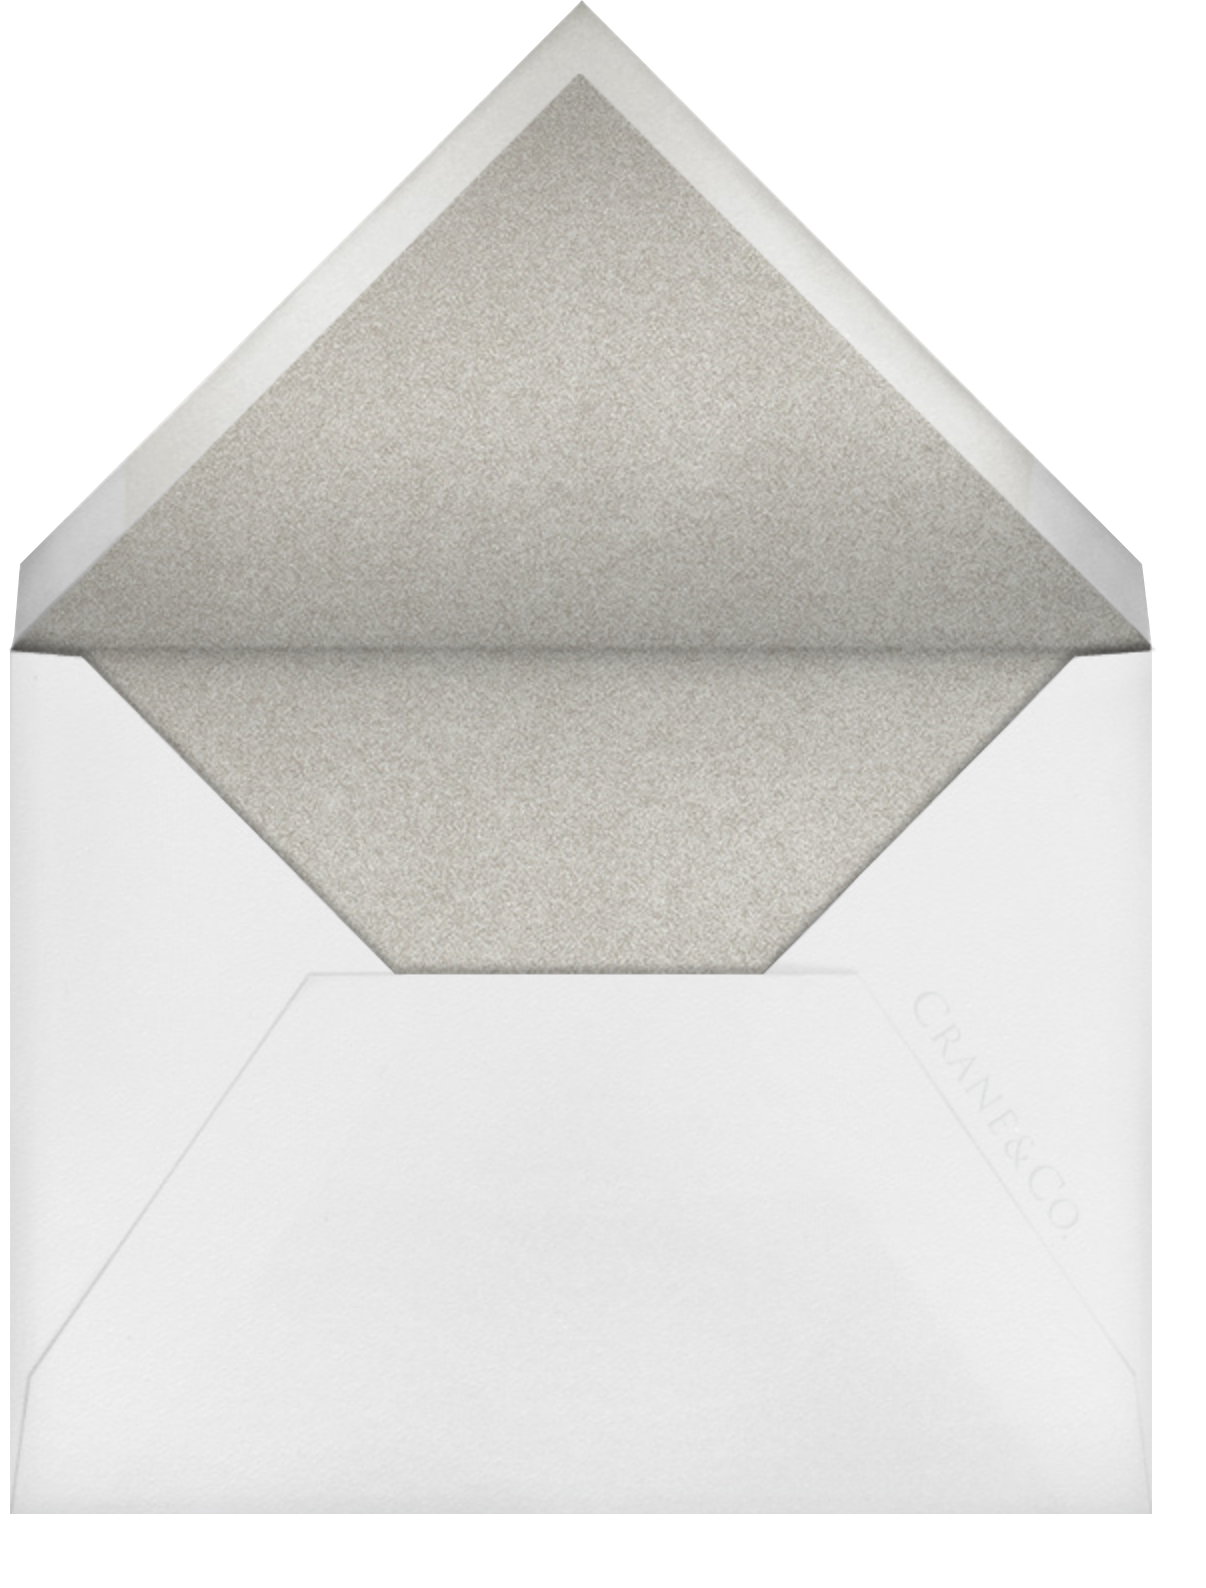 From This Day Forward (Thank You) - Platinum - Crane & Co. - Personalized stationery - envelope back